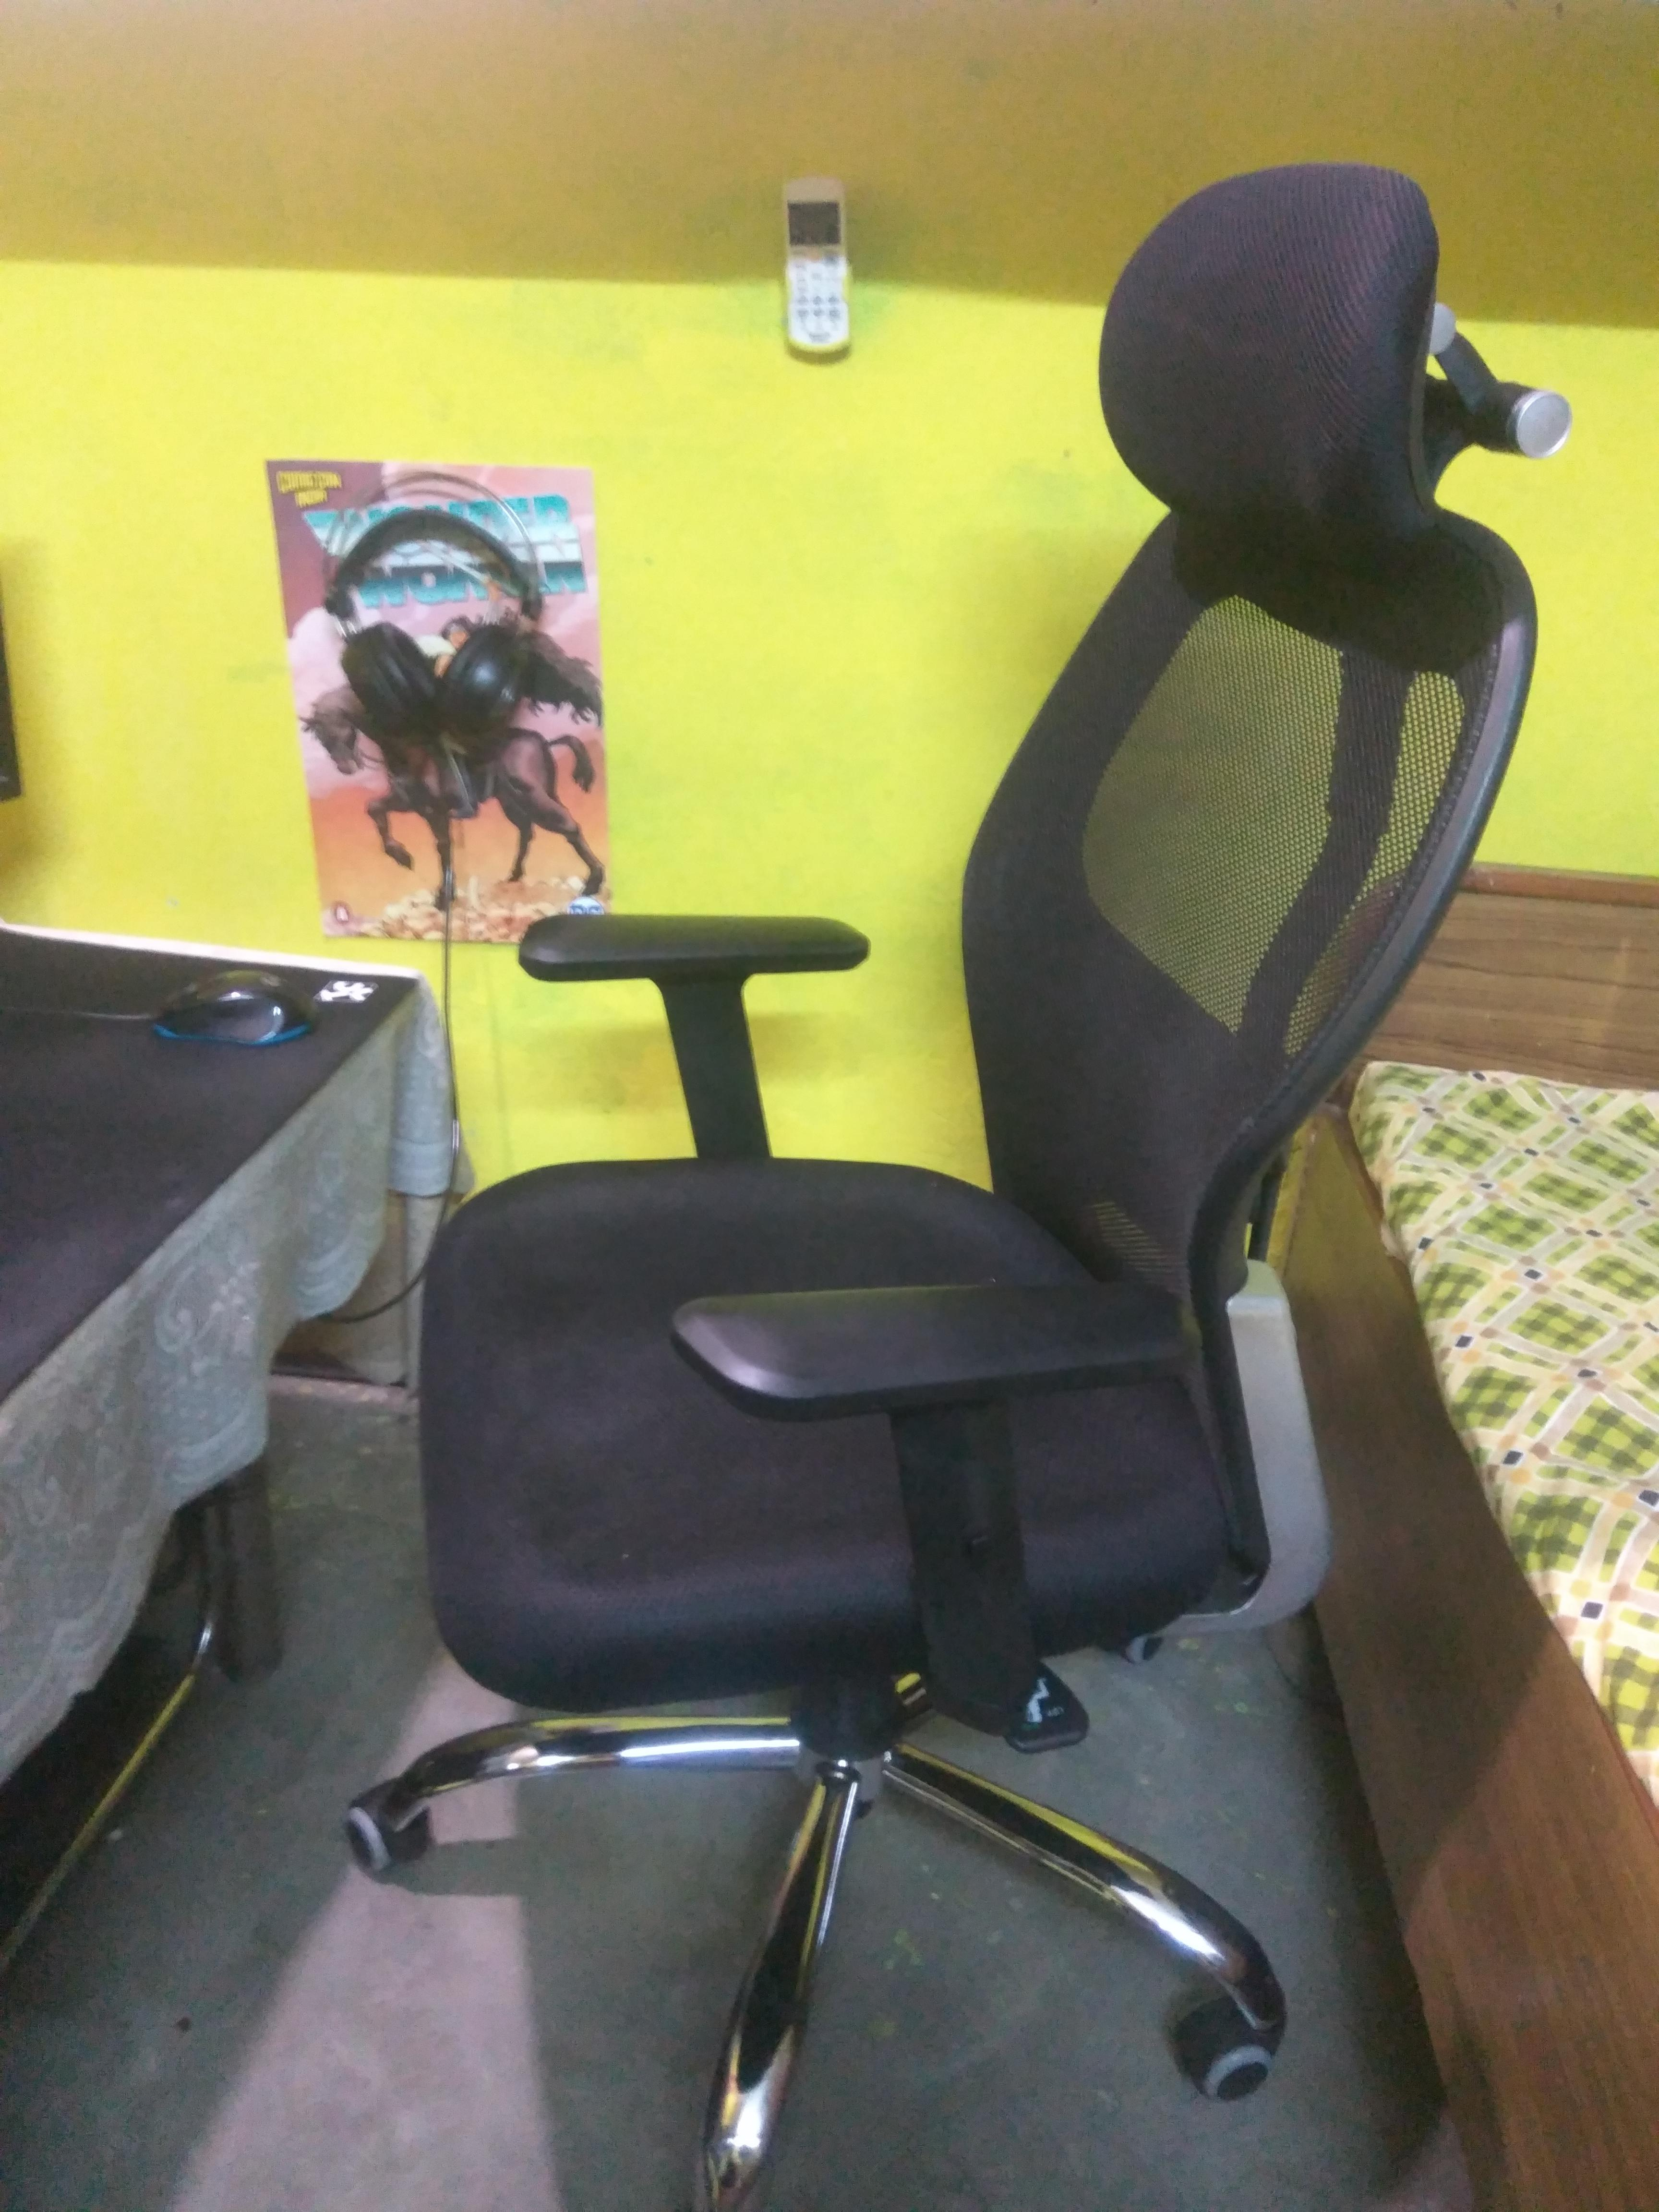 [image] After 8 years of almost killing my back on a rock hard plastic chair, I was able to afford a decent chair, bought it with my hard earned money.